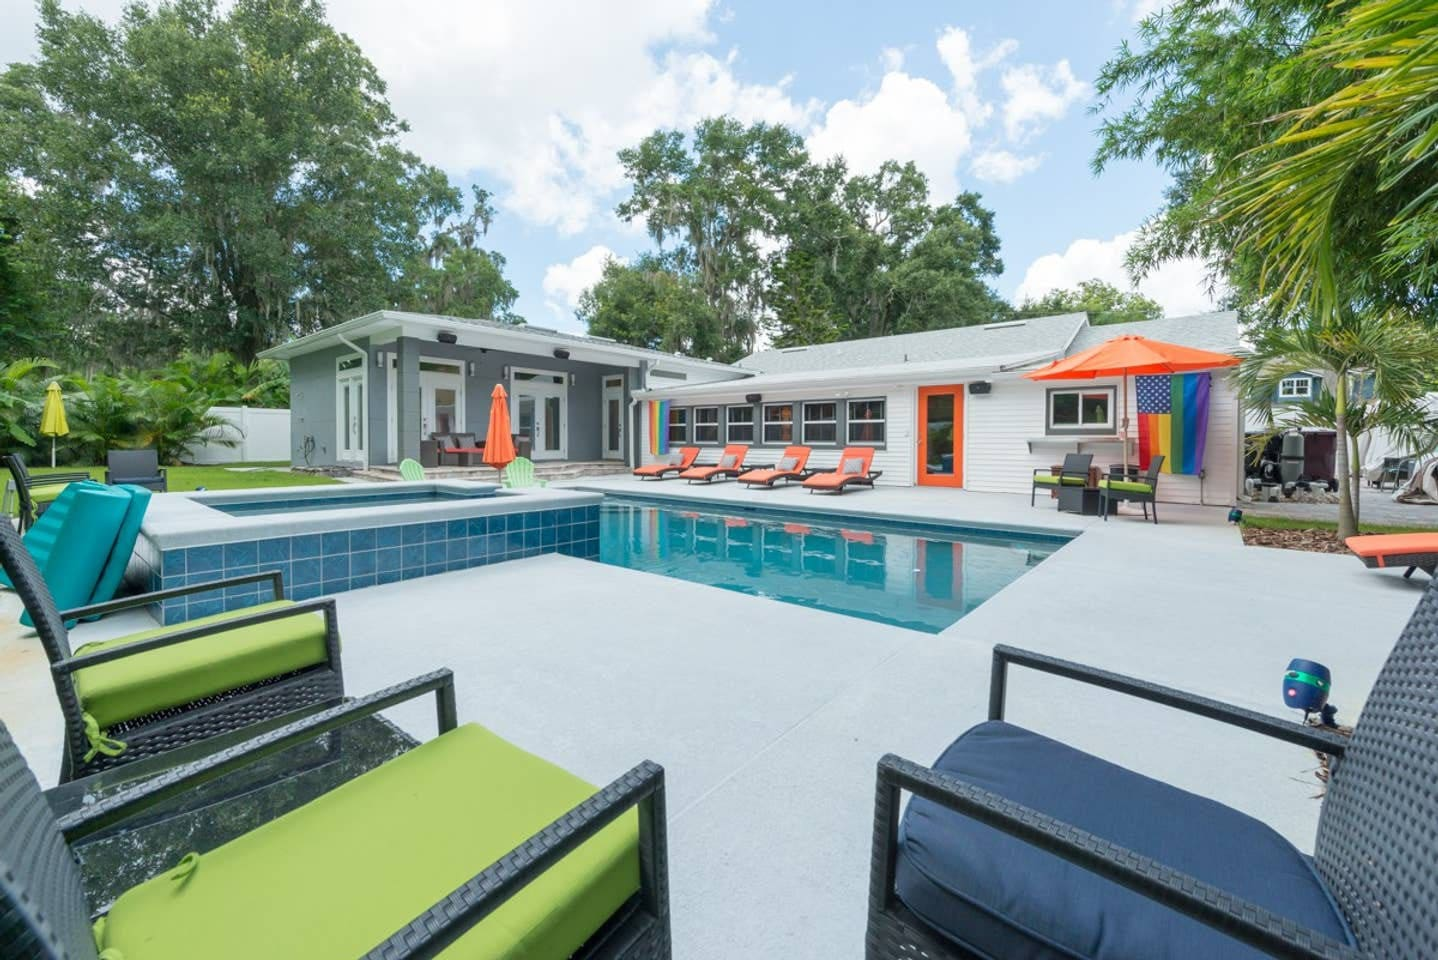 Resort style saltwater pool and jacuzzi. Newly completed! Privacy fence and beautiful palms create an atmosphere perfect for swimming and sunning. The new outdoor speakers complete the space with your favorite music. Pool shared with the home. Enjoy!